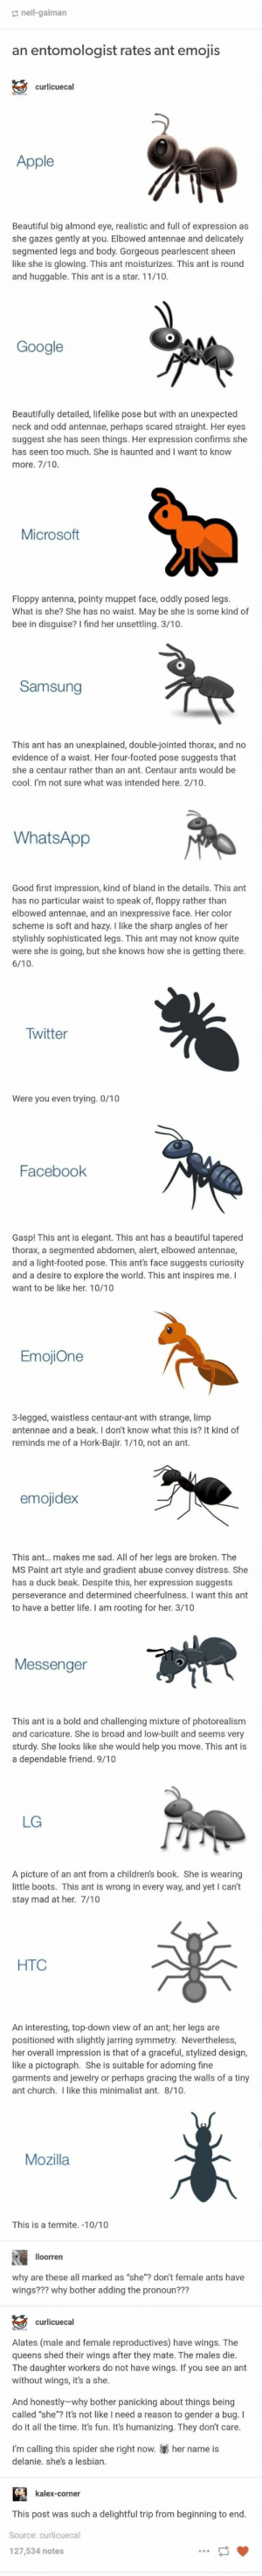 : neil-gaiman  an entomologist rates ant emojis  curlicuecal  Apple  Beautiful big almond eye, realistic and full of expression as  she gazes gently at you. Elbowed antennae and delicately  segmented legs and body. Gorgeous pearlescent sheen  like she is glowing. This ant moisturizes. This ant is round  and huggable. This ant is a star. 11/10.  Google  unexpected  Beautifully detailed, lifelike pose but with an  neck and odd antennae, perhaps scared straight. Her eyes  suggest she has seen things. Her expression confirms she  has seen too much. She is haunted and I want to know  more. 7/10.  Microsoft  Floppy antenna, pointy muppet face, oddly posed legs.  What is she? She has no waist. May be she is some kind of  bee in disguise? I find her unsettling. 3/10.  Samsung  This ant has  unexplained, double-jointed thorax, and no  evidence of a waist. Her four-footed pose suggests that  an  she a centaur rather than an ant. Centaur ants would be  cool. I'm not sure what was intended here. 2/10  WhatsApp  Good first impression, kind of bland in the details. This ant  has no particular waist to speak of, floppy rather than  elbowed antennae, and an inexpressive face. Her color  scheme is soft and hazy. I like the sharp angles of her  stylishly sophisticated legs. This ant may not know quite  were she is going, but she knows how she is getting there.  6/10  Twitter  Were you even trying. 0/10  Facebook  Gasp! This ant is elegant. This ant has a beautiful tapered  thorax, a segmented abdomen, alert, elbowed antennae,  and a light-footed pose. This ant's face suggests curiosity  and a desire to explore the world. This ant inspires me. I  want to be like her. 10/10  EmojiOne  3-legged, waistless centaur-ant with strange, limp  antennae and a beak. I don't know what this is? It kind of  reminds me of a Hork-Bajir. 1/10, not an ant.  emojidex  This ant... makes me sad. All of her legs are broken. The  MS Paint art style and gradient abuse convey distress. She  has a duck beak. D